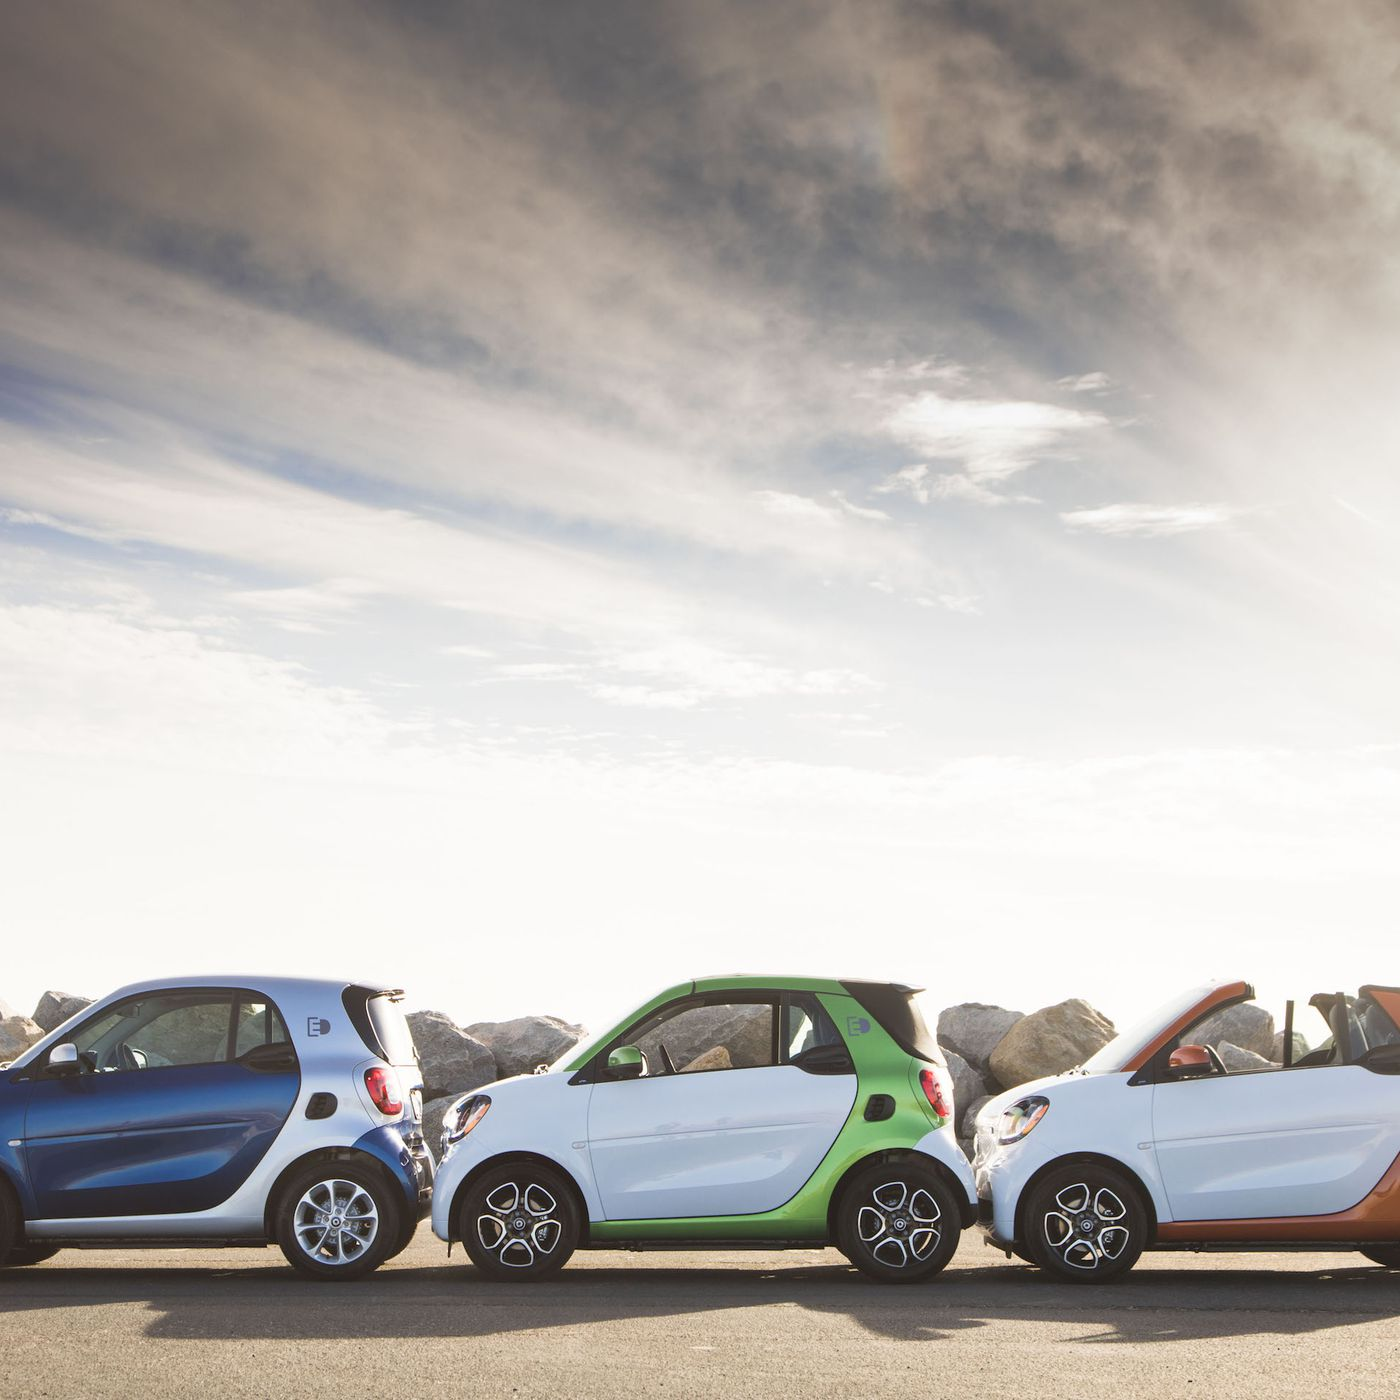 Smart Car Tires Price, Daimler Will Stop Selling Its Adorably Small Smart Cars In The Us And Canada, Smart Car Tires Price